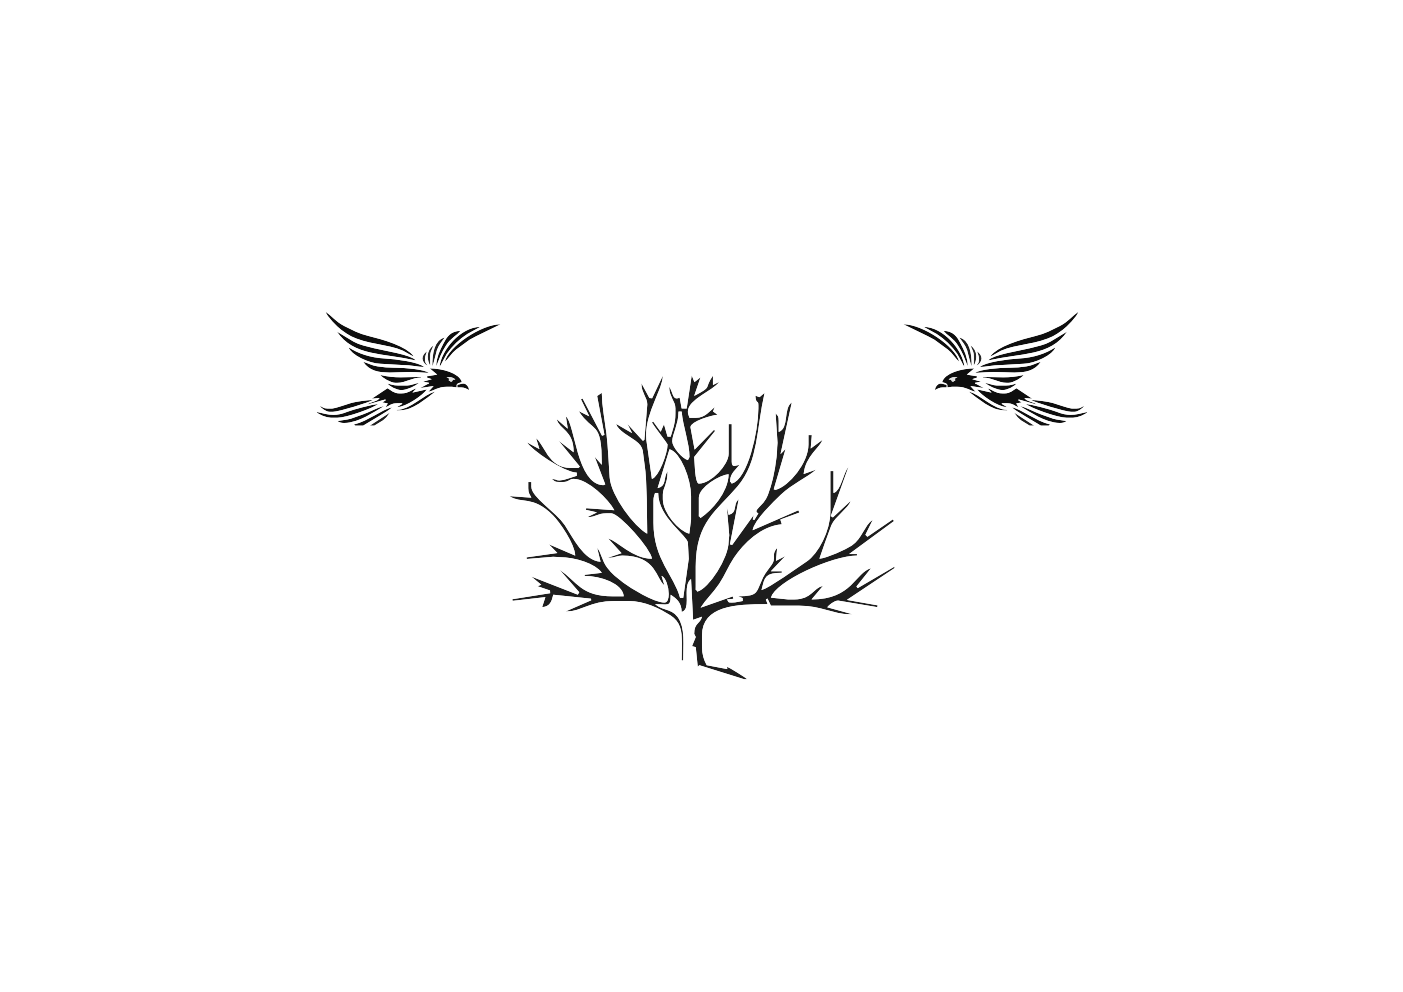 Twig vector. House design for a